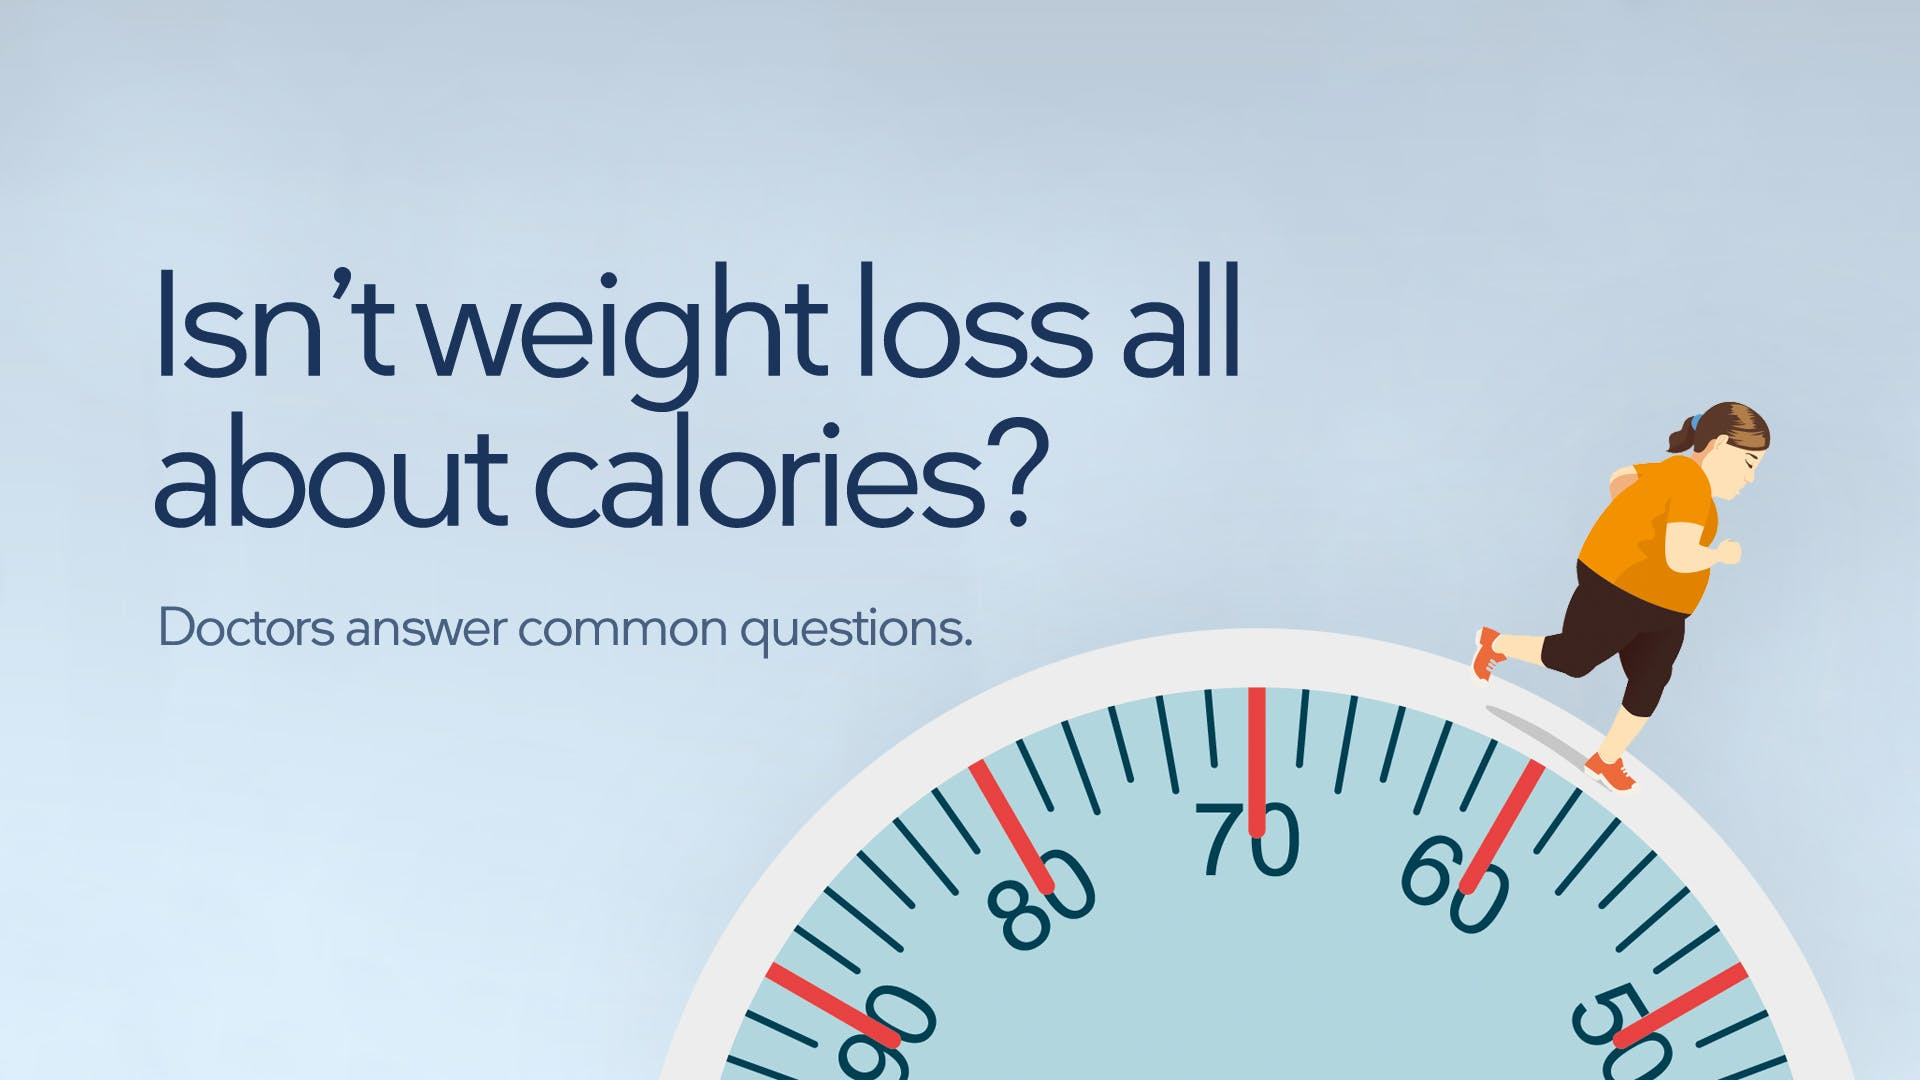 #4 low-carb question: Isn't weight loss all about counting calories?